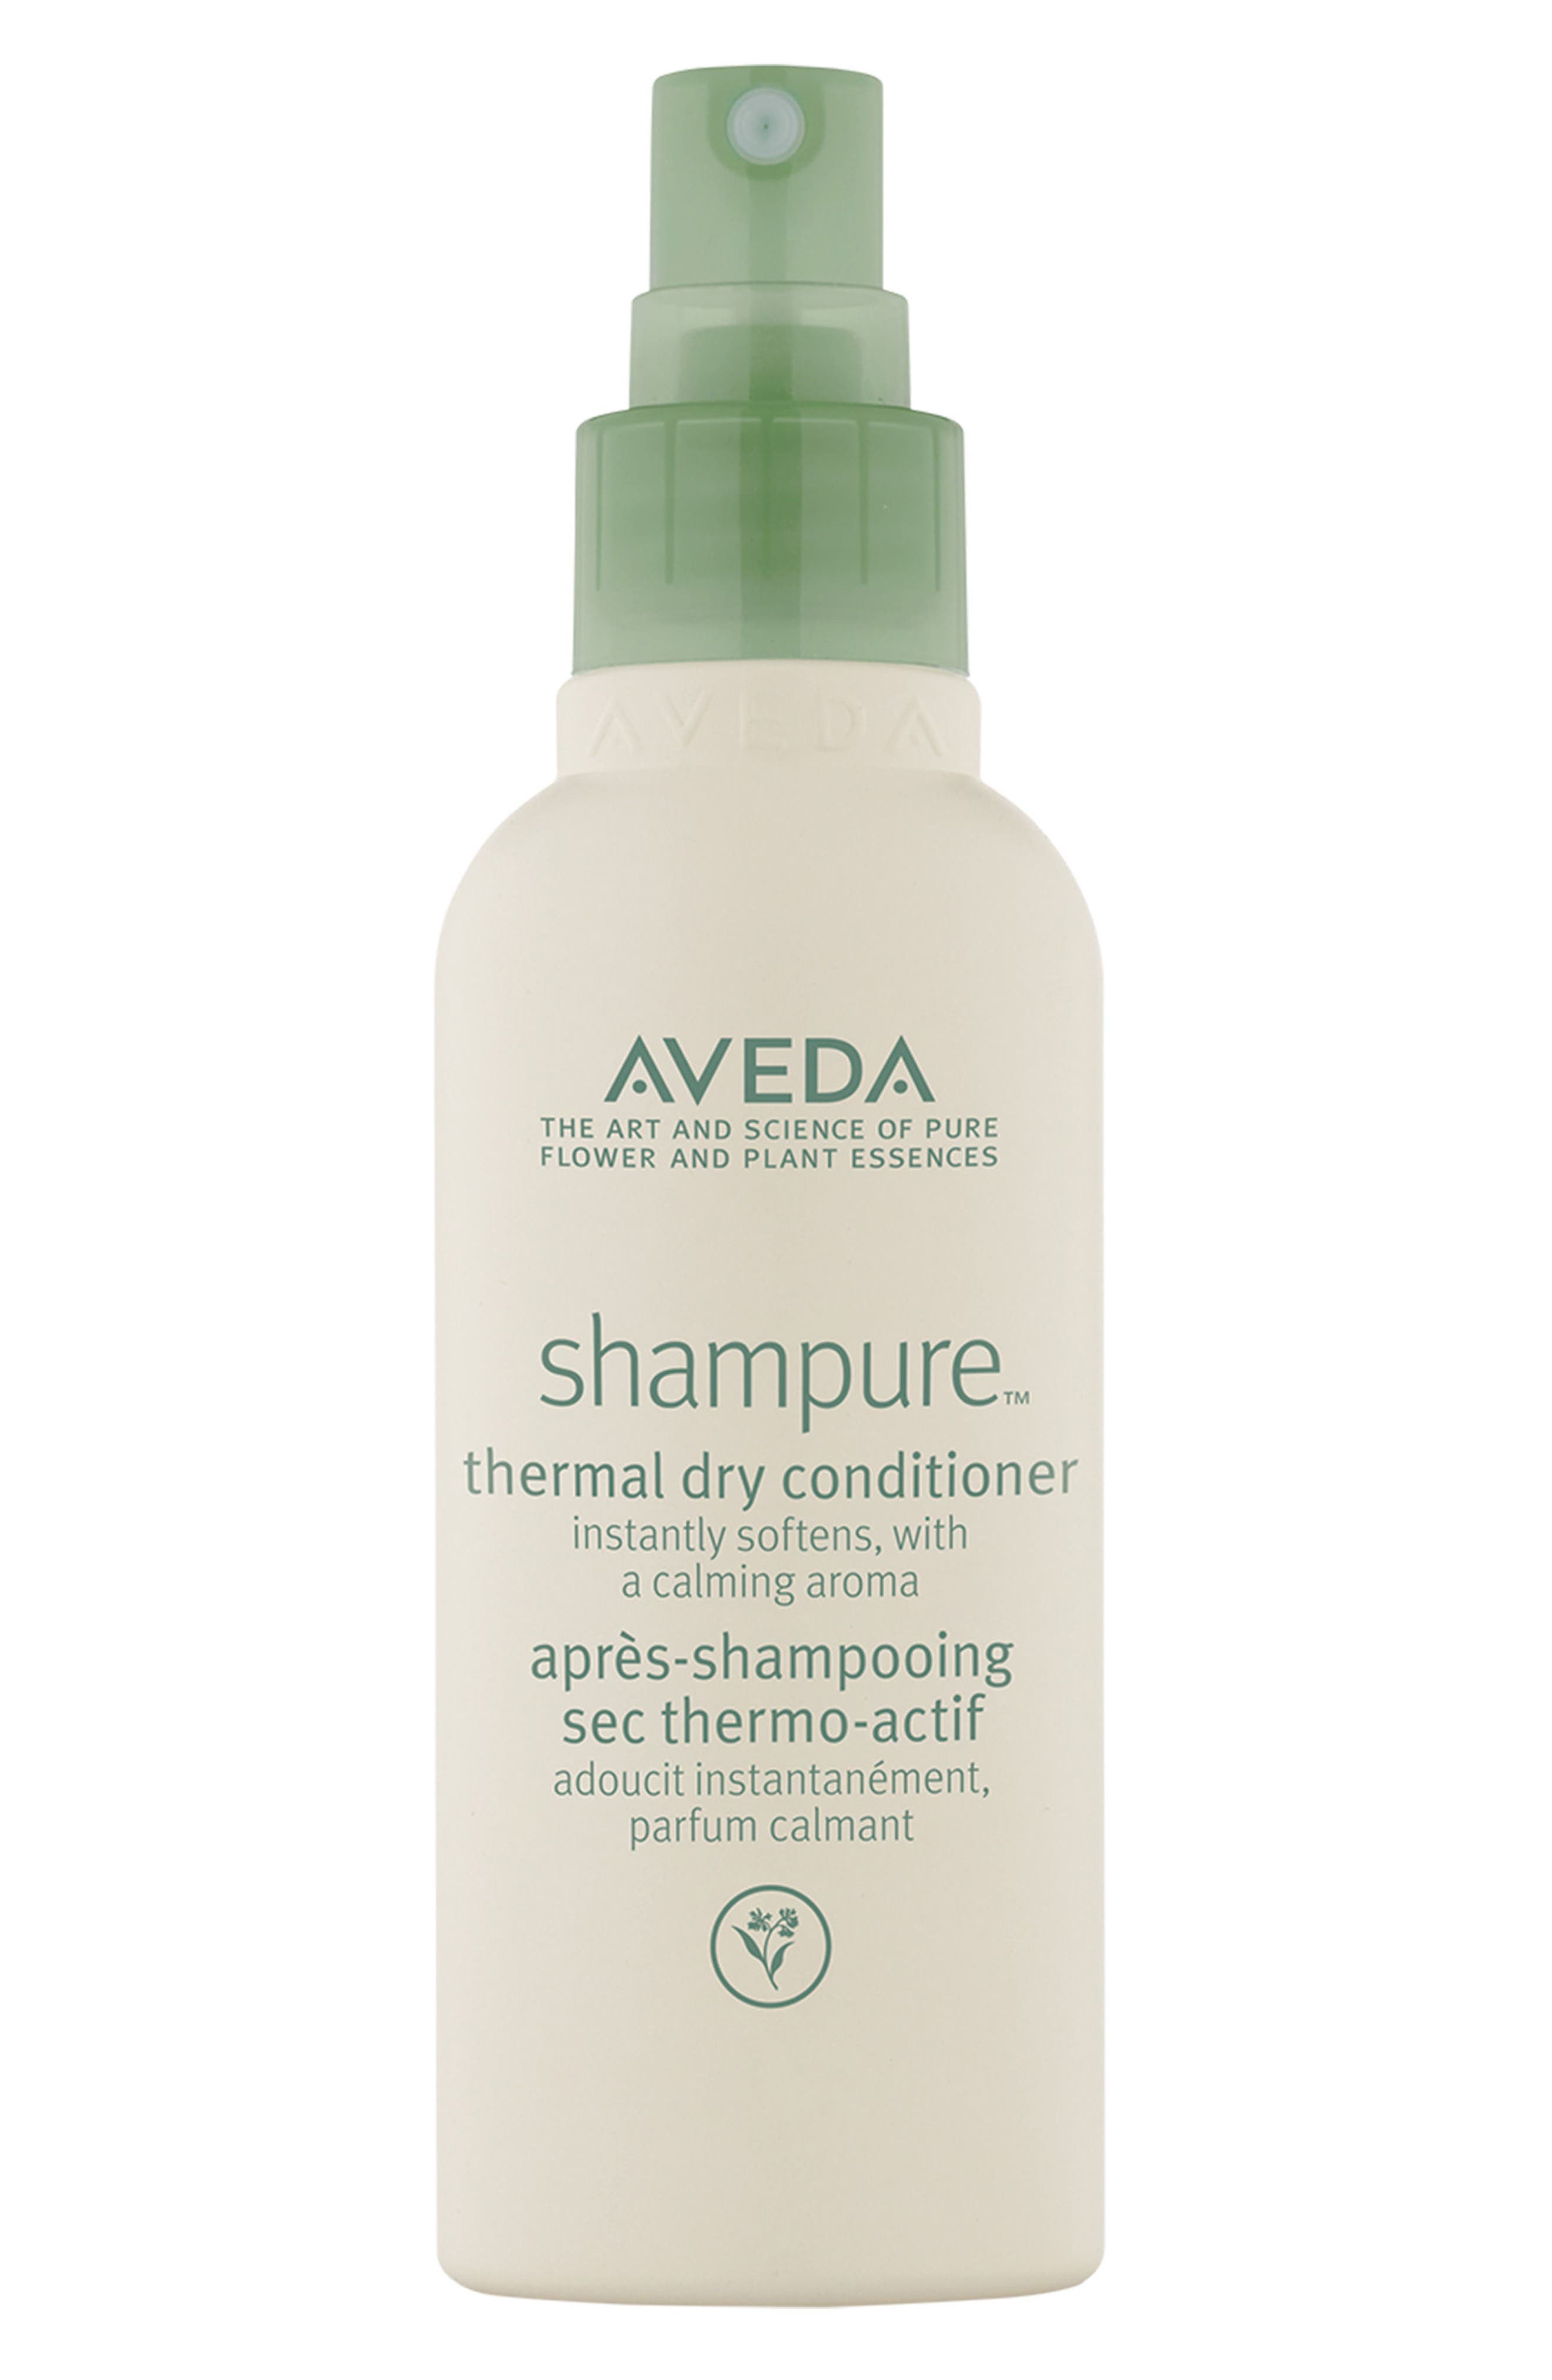 Aveda shampure™ Thermal Dry Conditioner